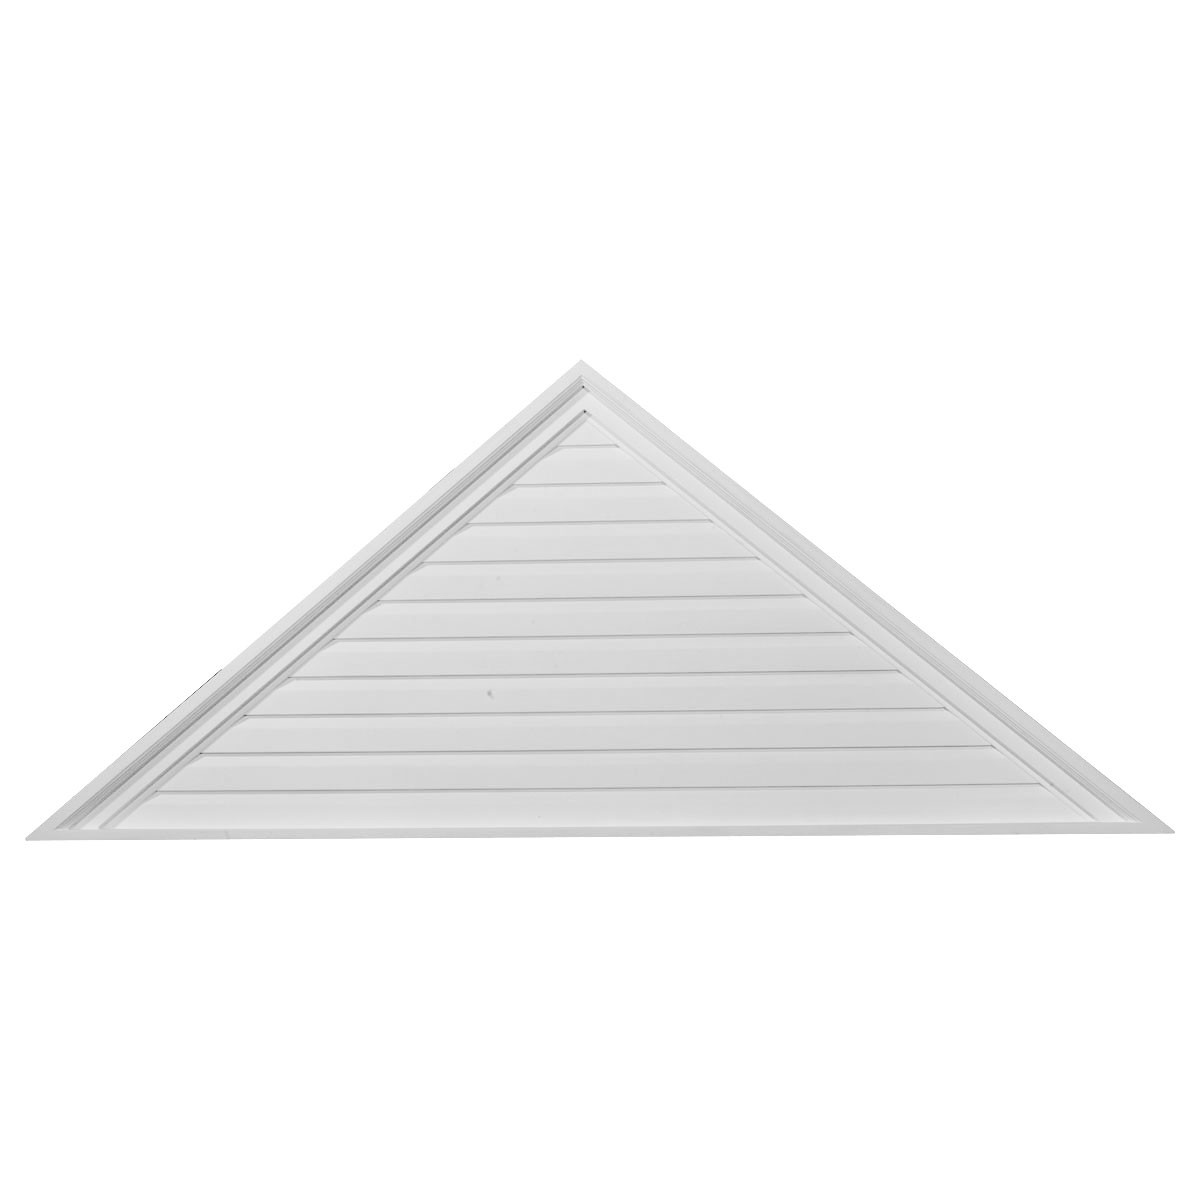 """EM-GVTR65X27F - 65""""W x 27""""H x 2 1/4""""P,  Pitch 10/12 Triangle Gable Vent, Functional"""